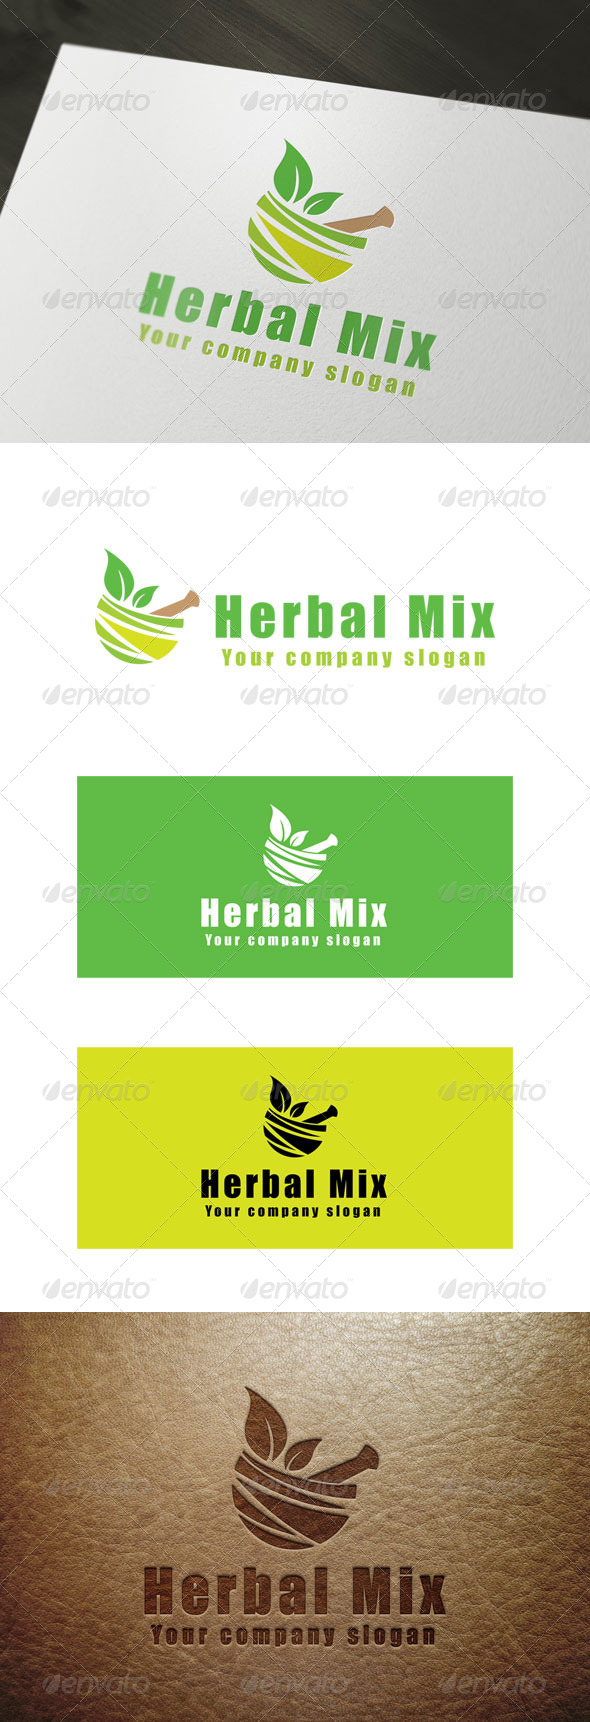 GraphicRiver Herbal Mix Logo 8634955